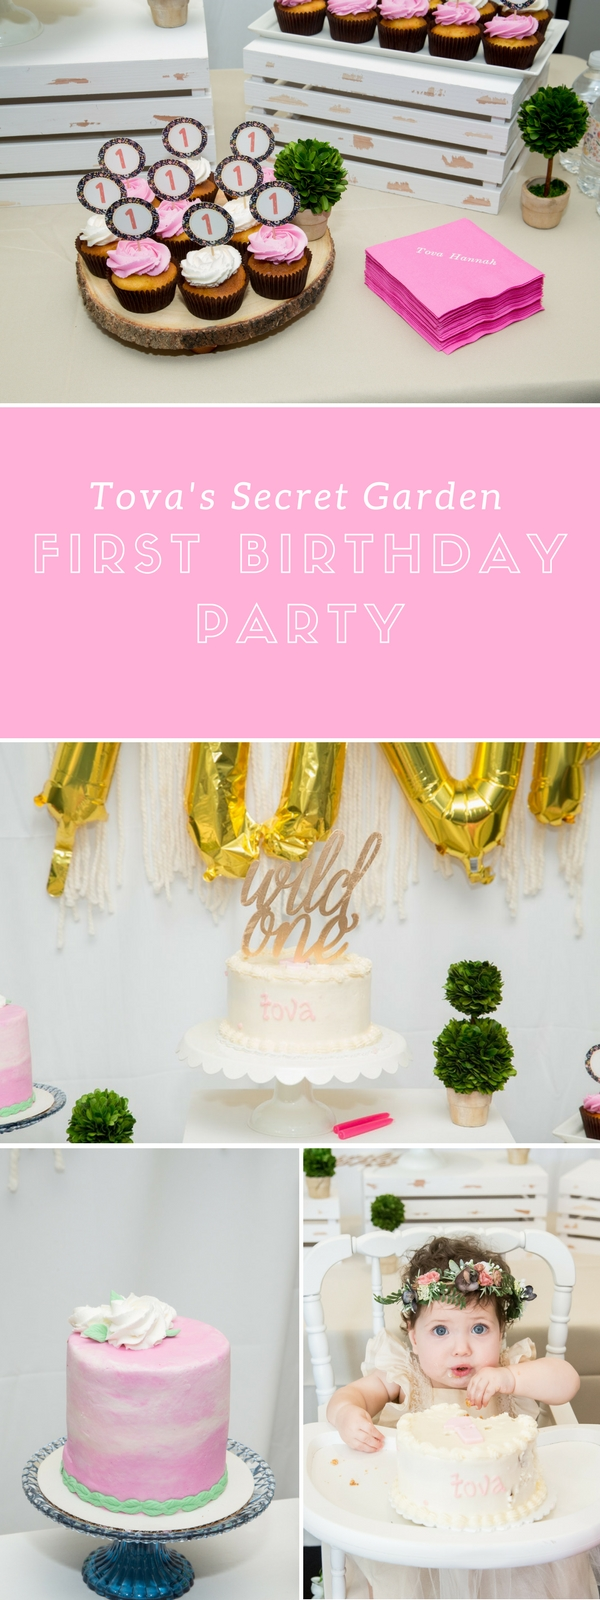 Tova's Pink, Navy and Gold Secret Garden First Birthday Party